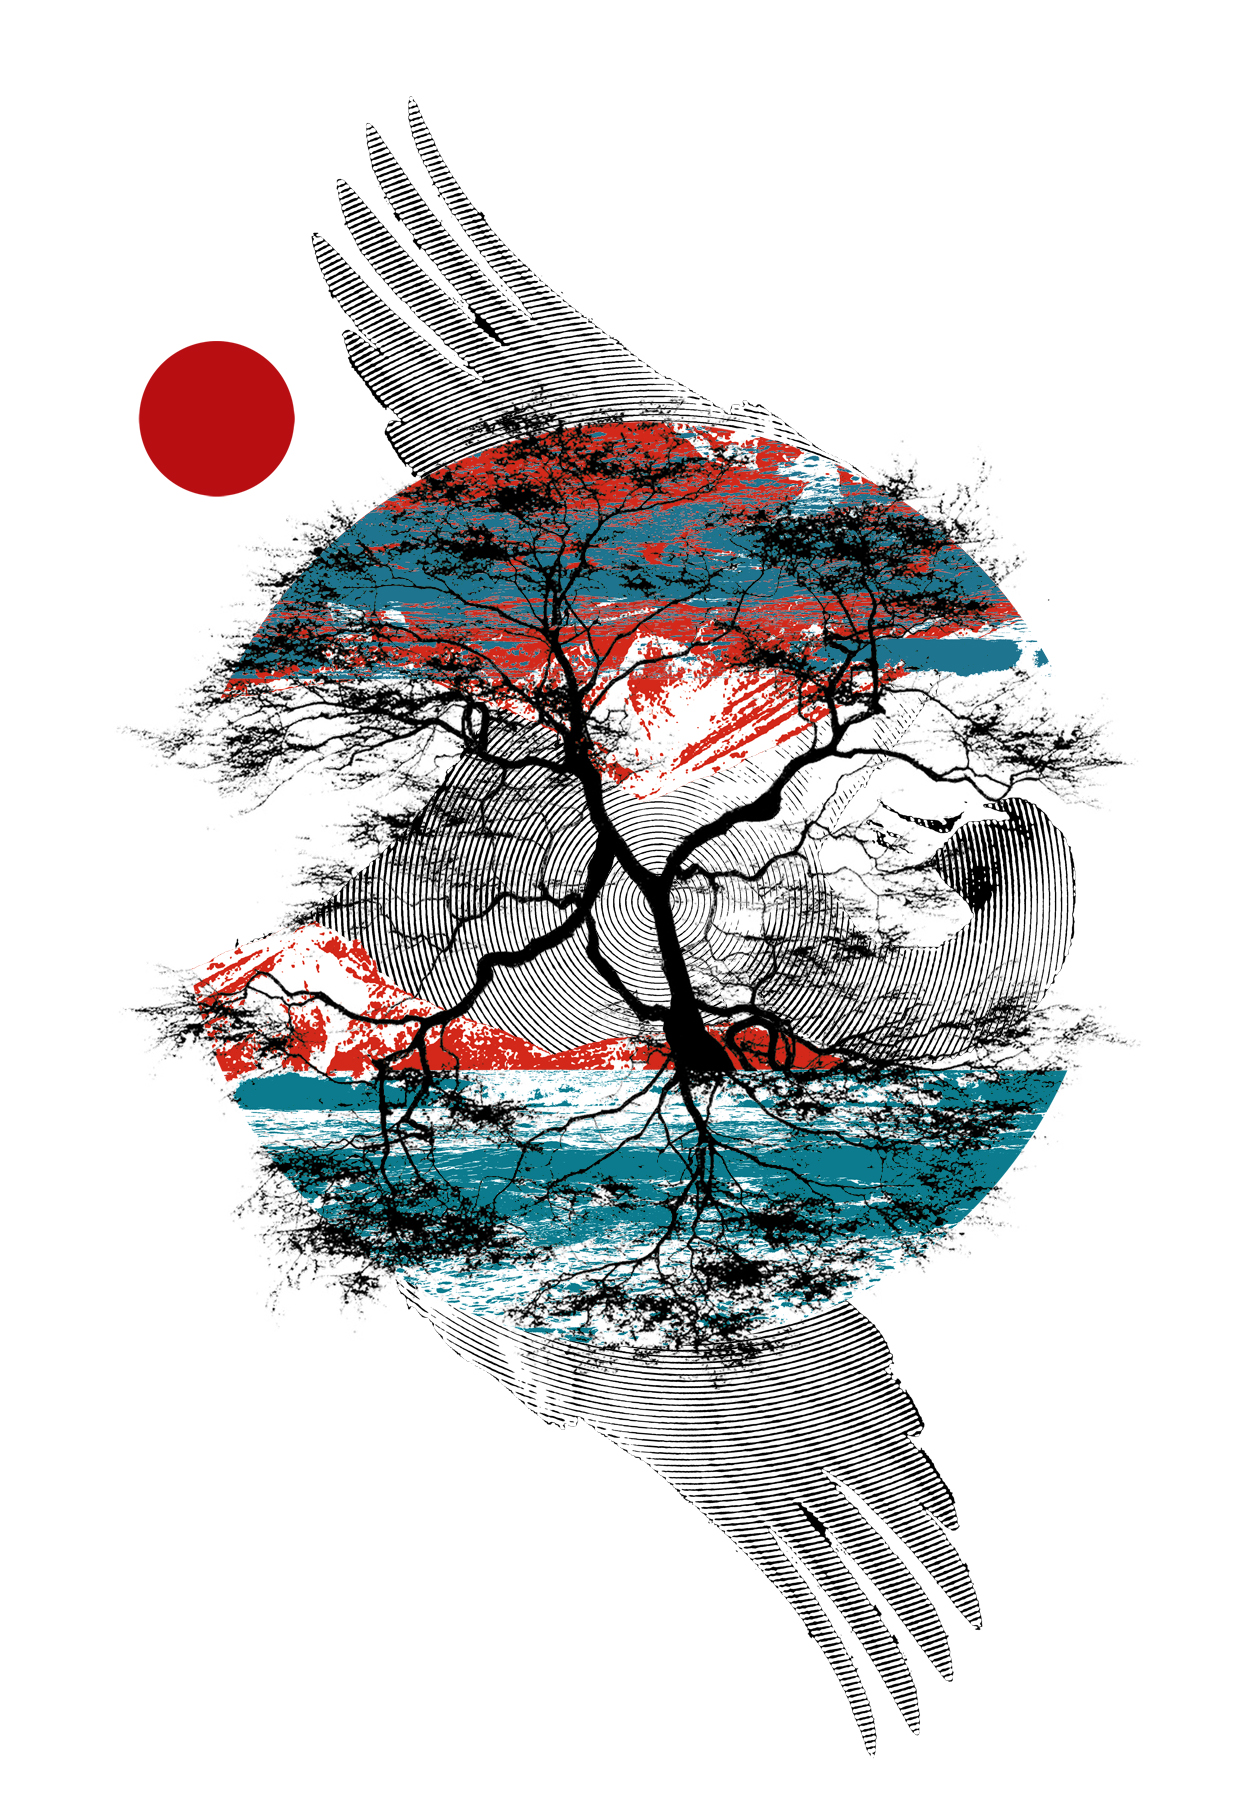 Poster design japan - 2011 Screen Print 18 24 Inspired By The Tragic Tsunami That Hit Japan On March 11th 2011 I Wanted To Express My Love And Support For Japan